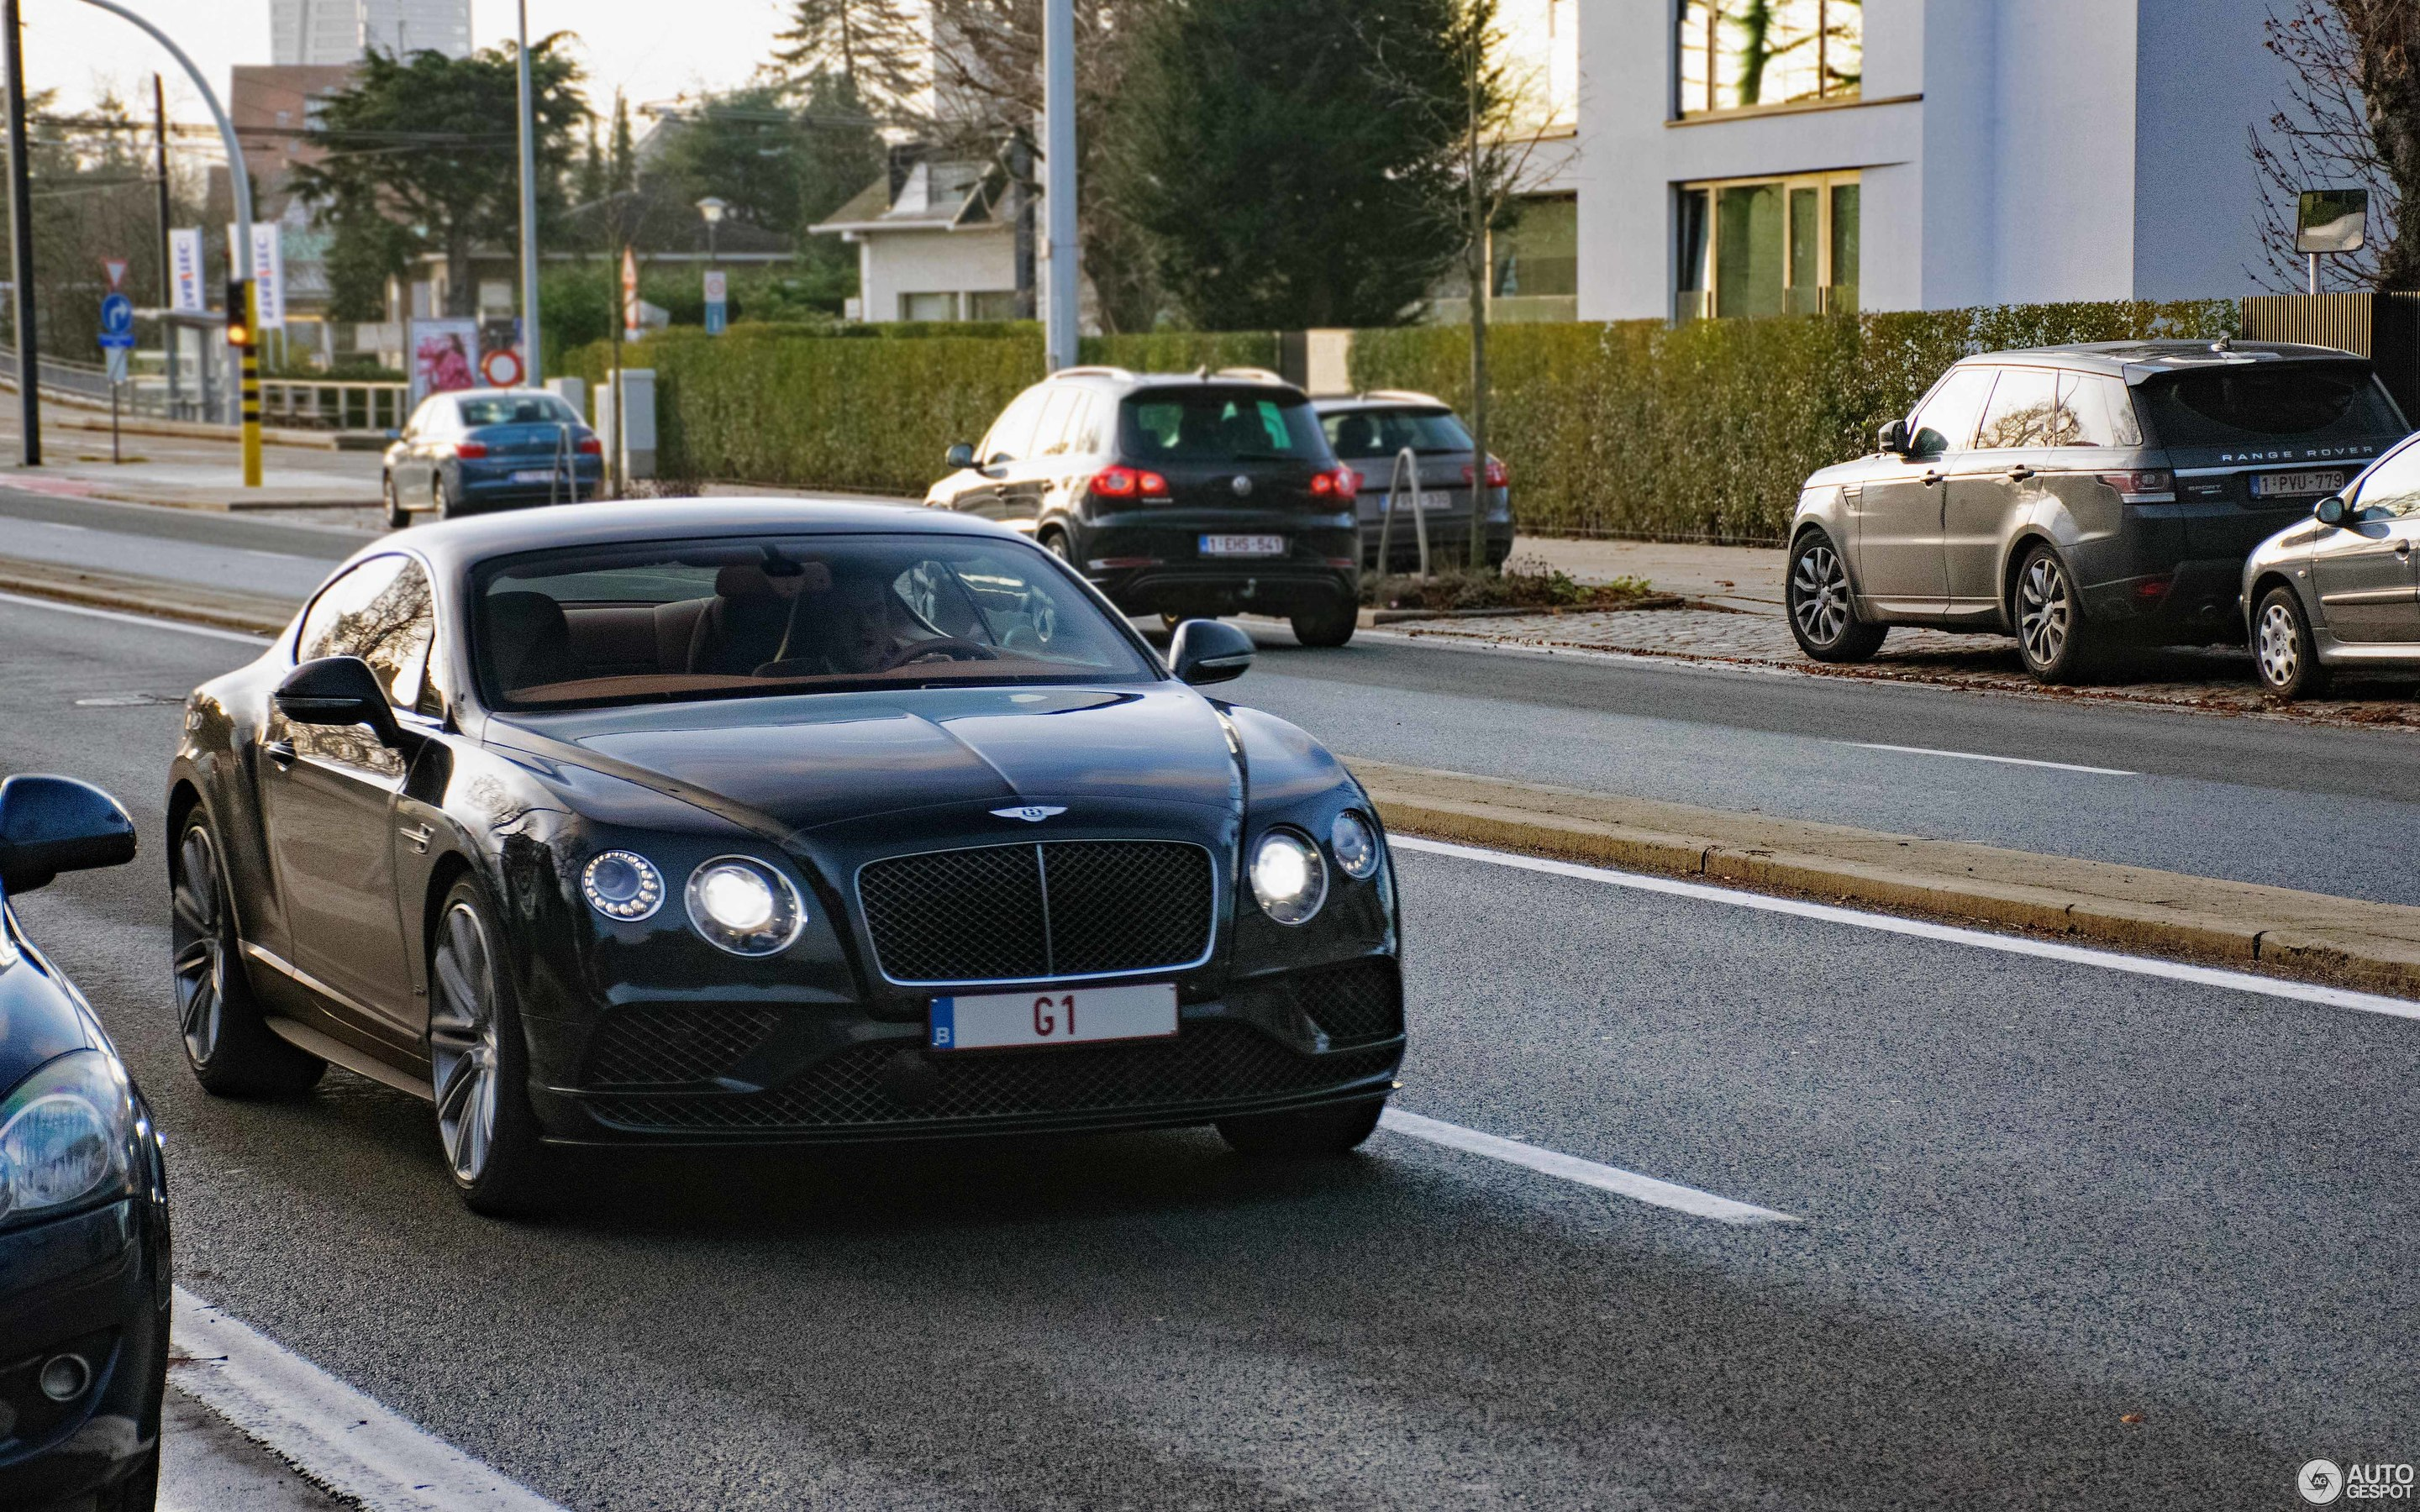 continental bentley before benz white betley for sale bavarian after titan conversion gt project used benzbavarian